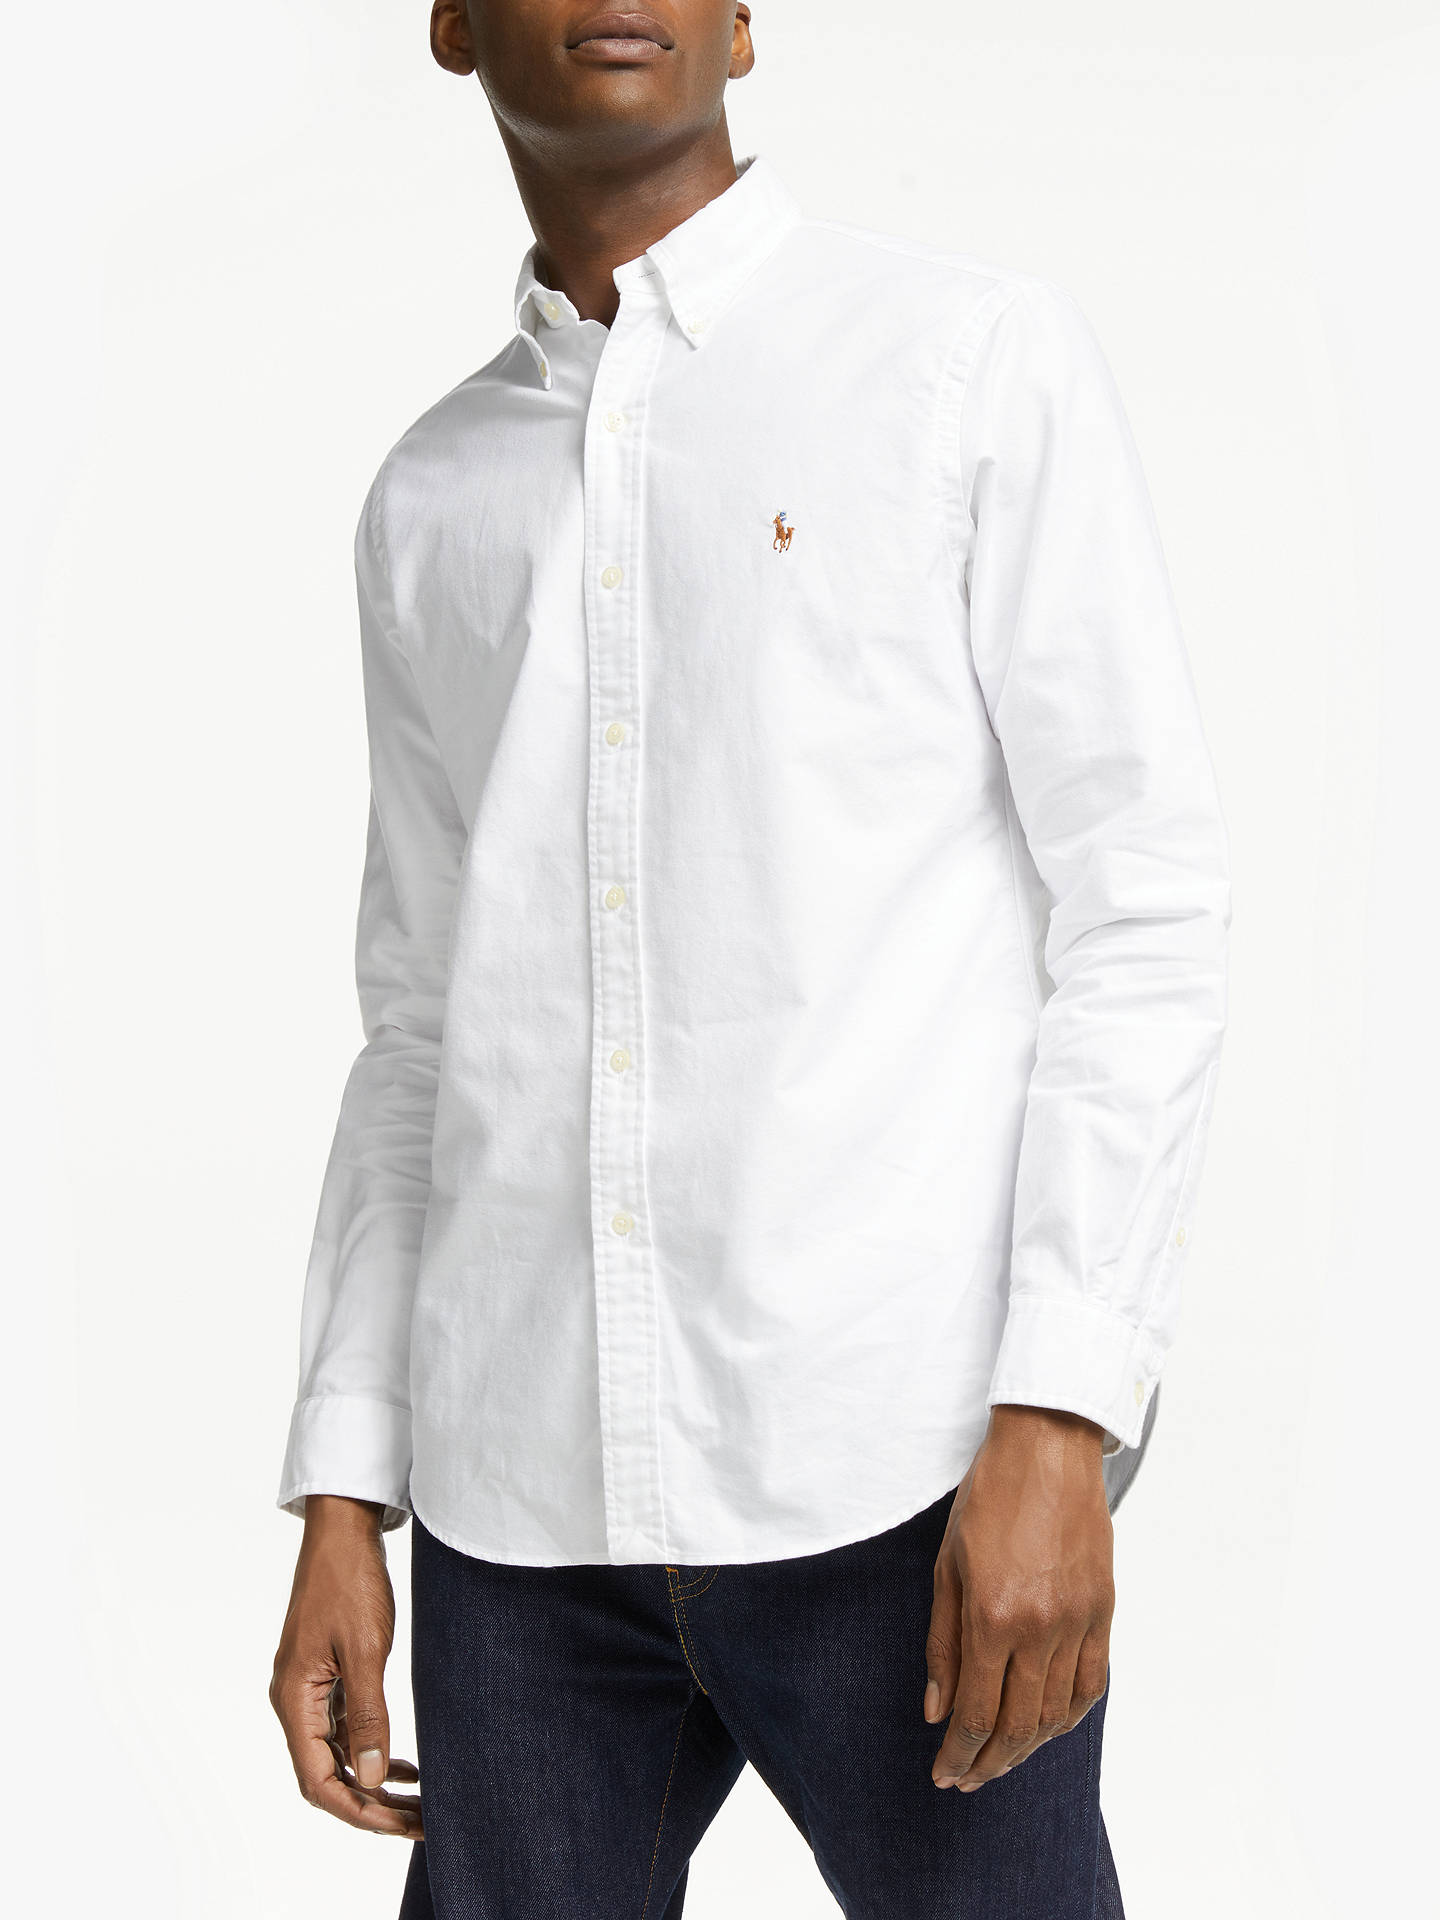 BuyPolo Ralph Lauren Oxford Shirt, White, S Online at johnlewis.com ... 336ac733ad99